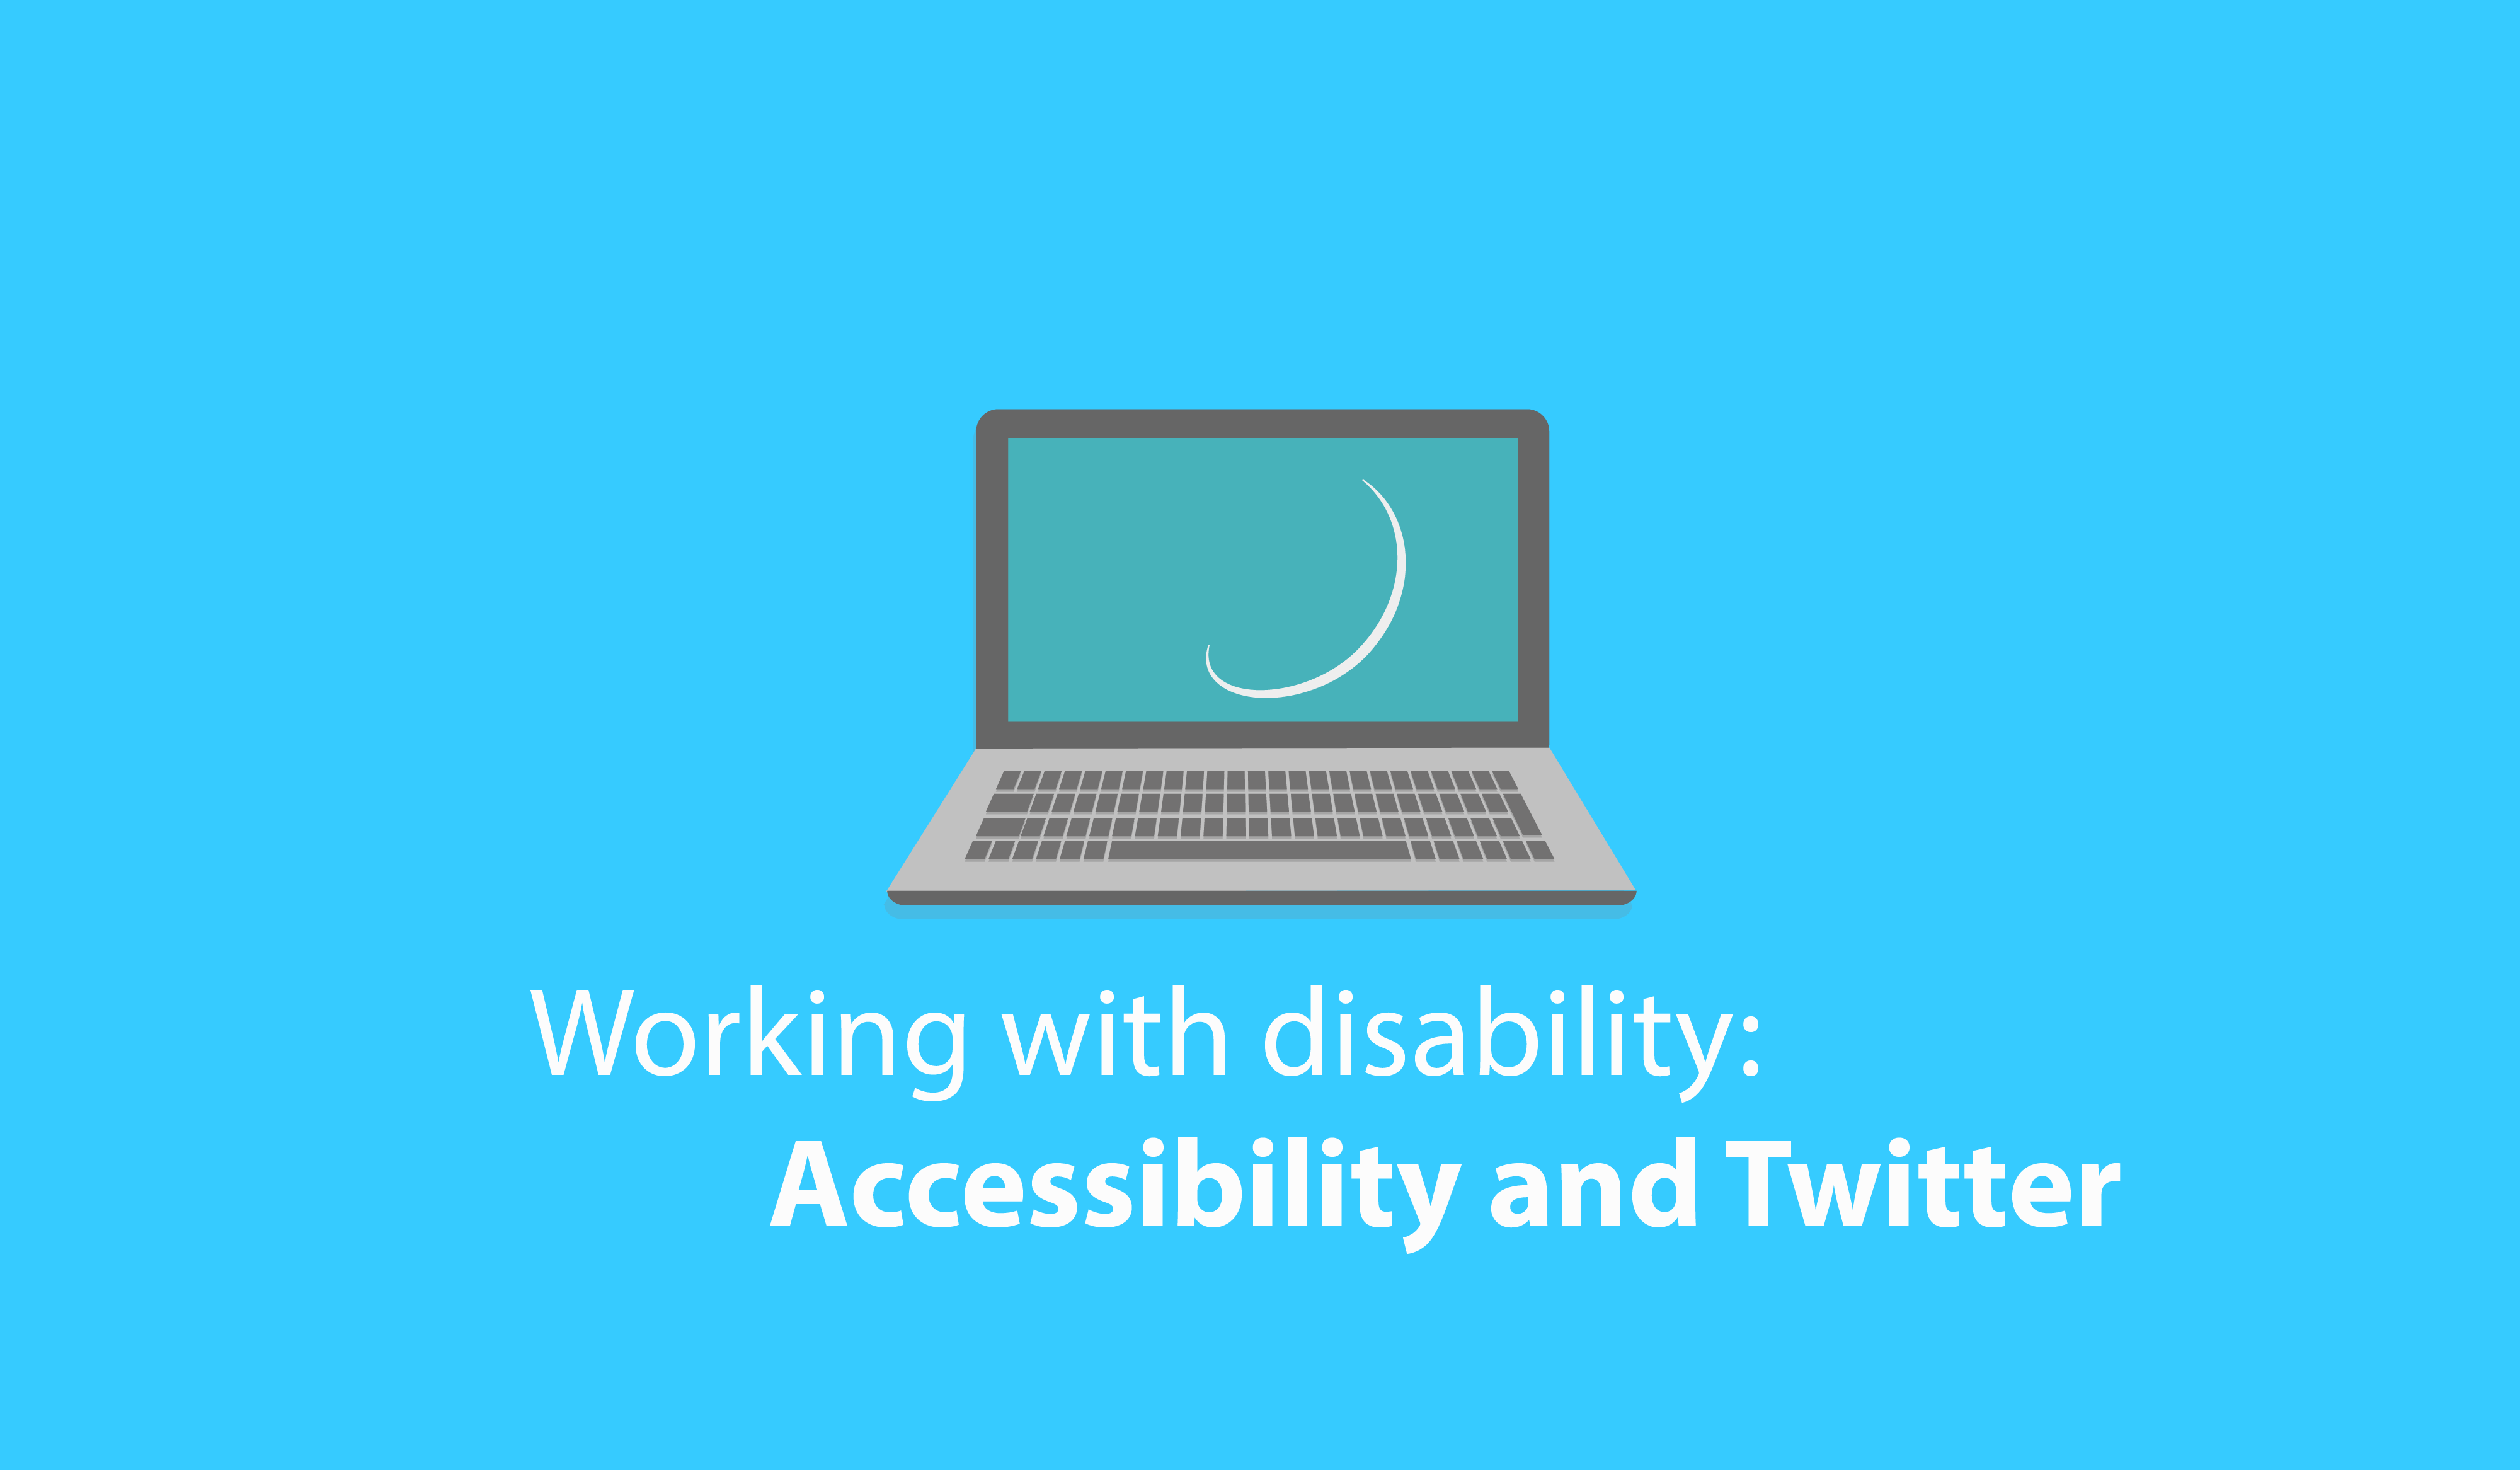 Working with disability: Accessibility and Twitter